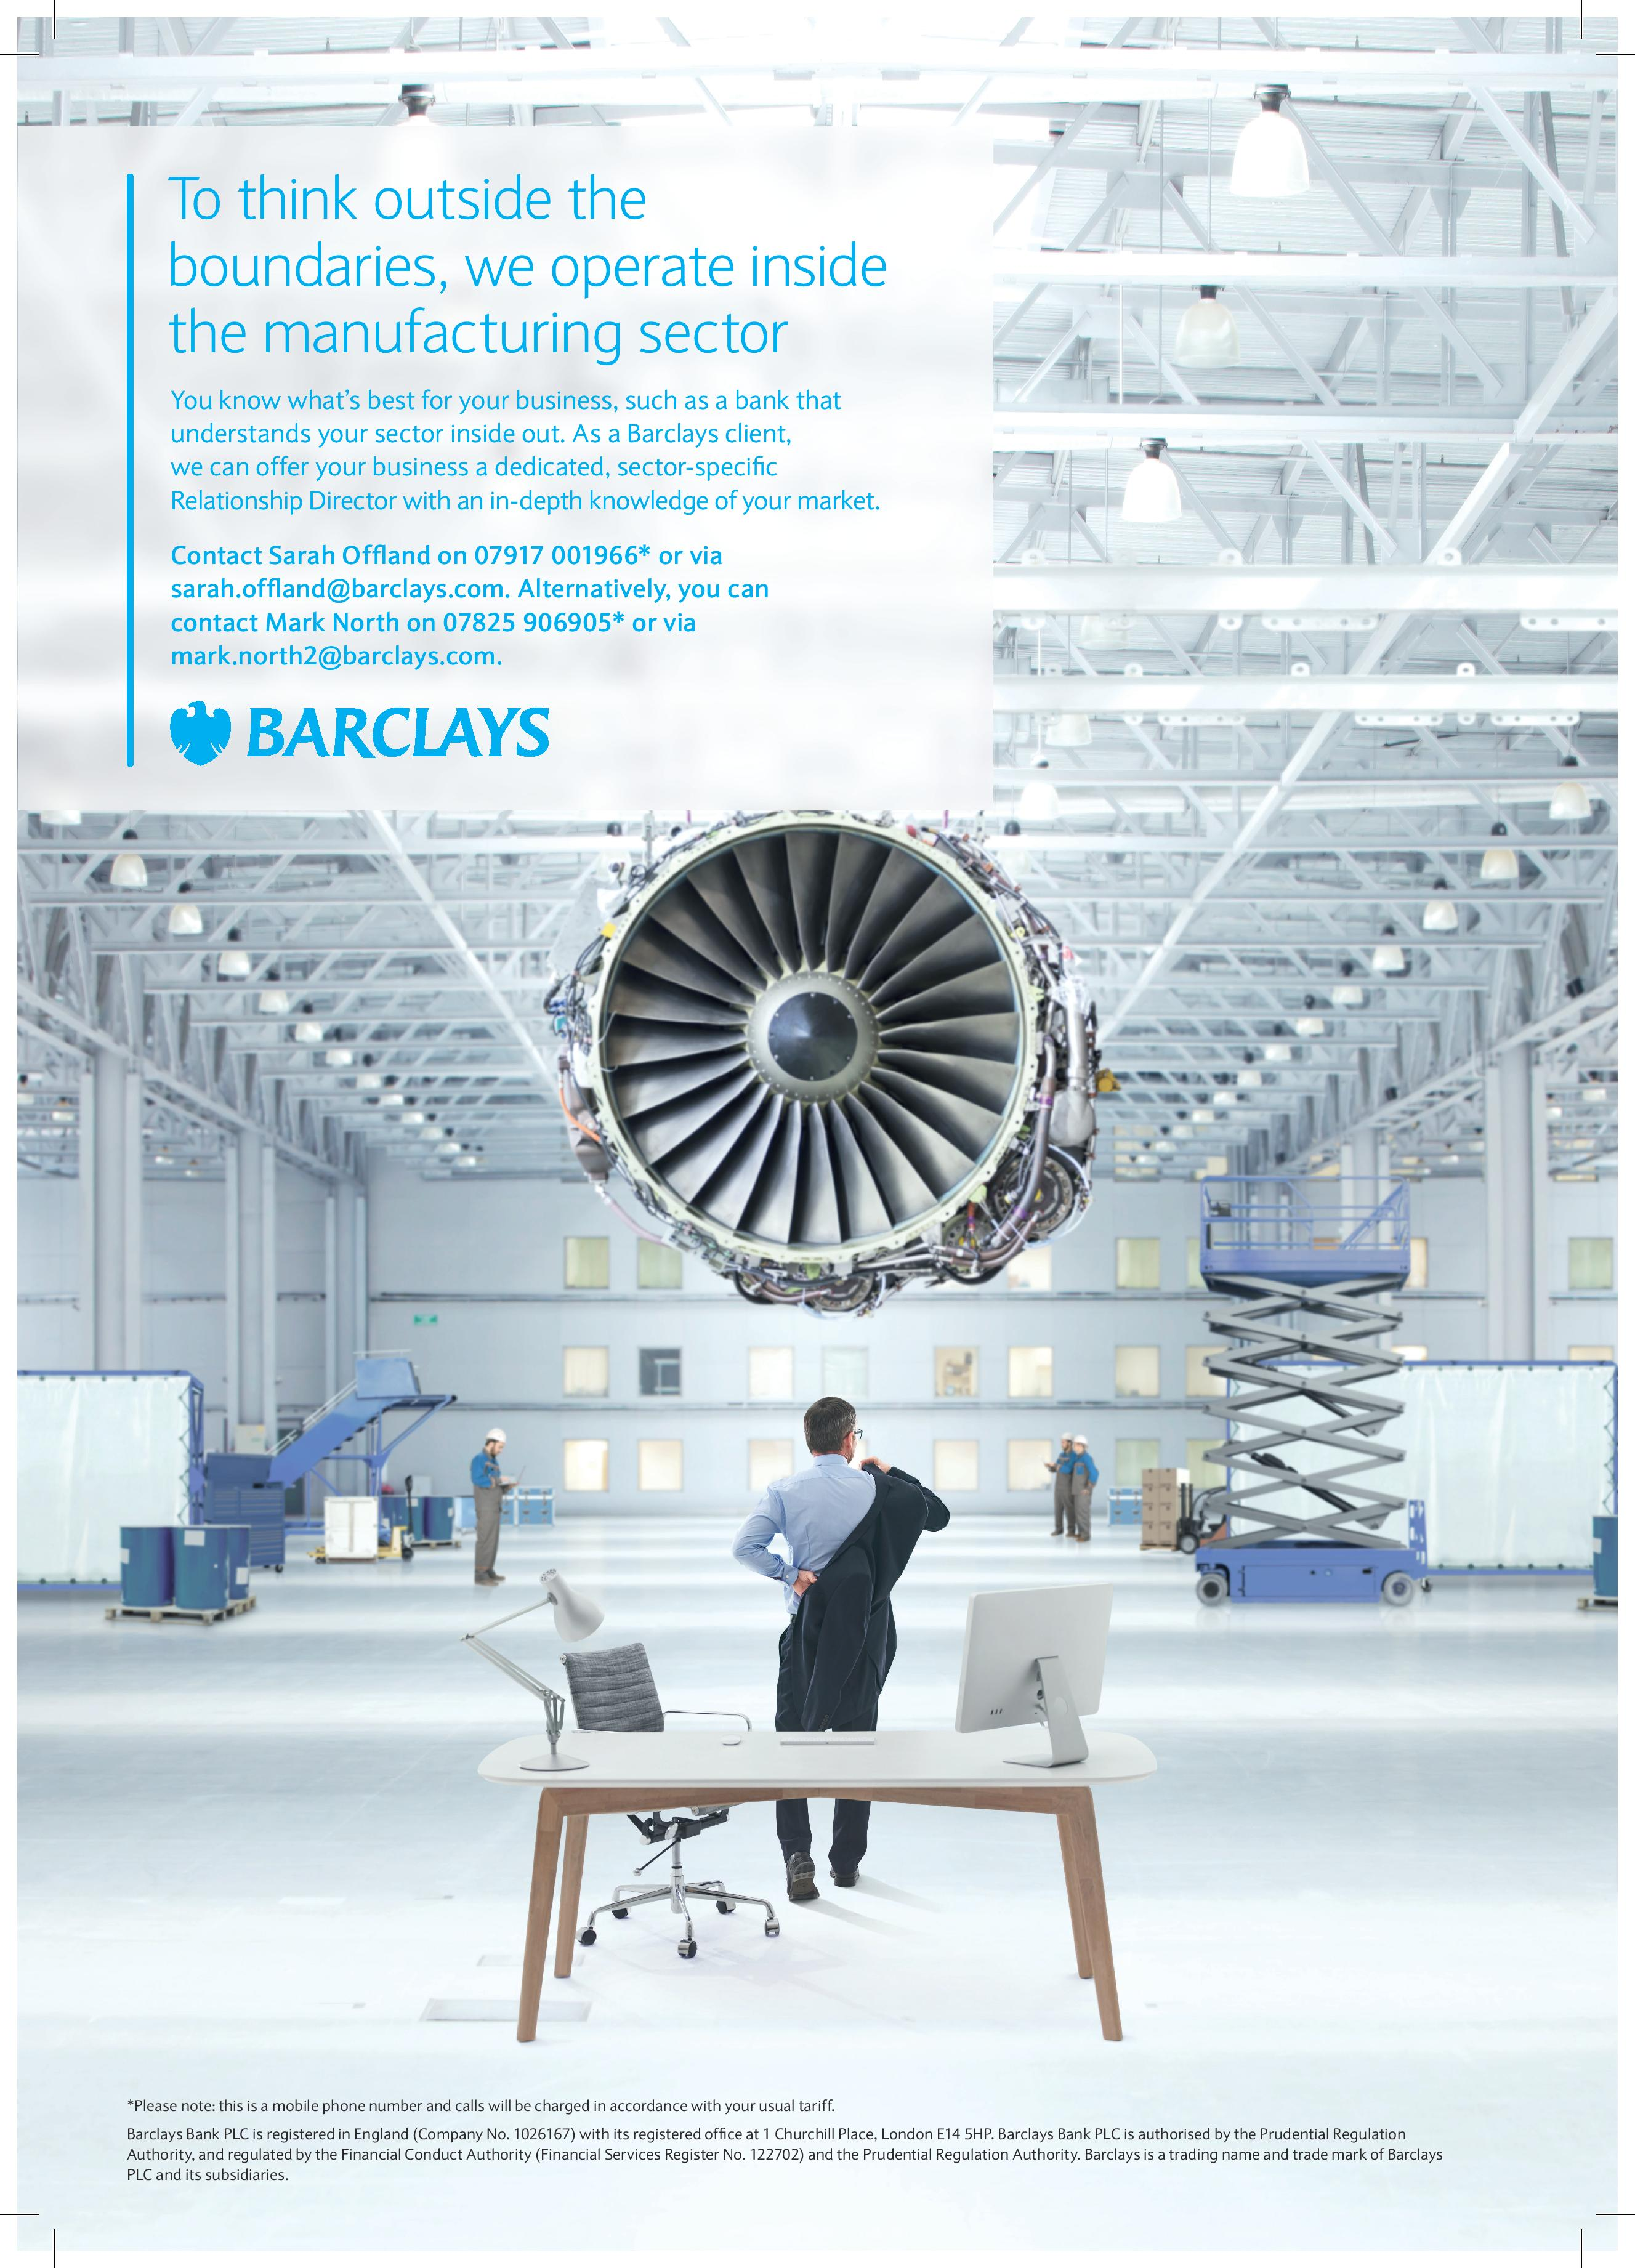 http://www.barclays.co.uk/businessbanking